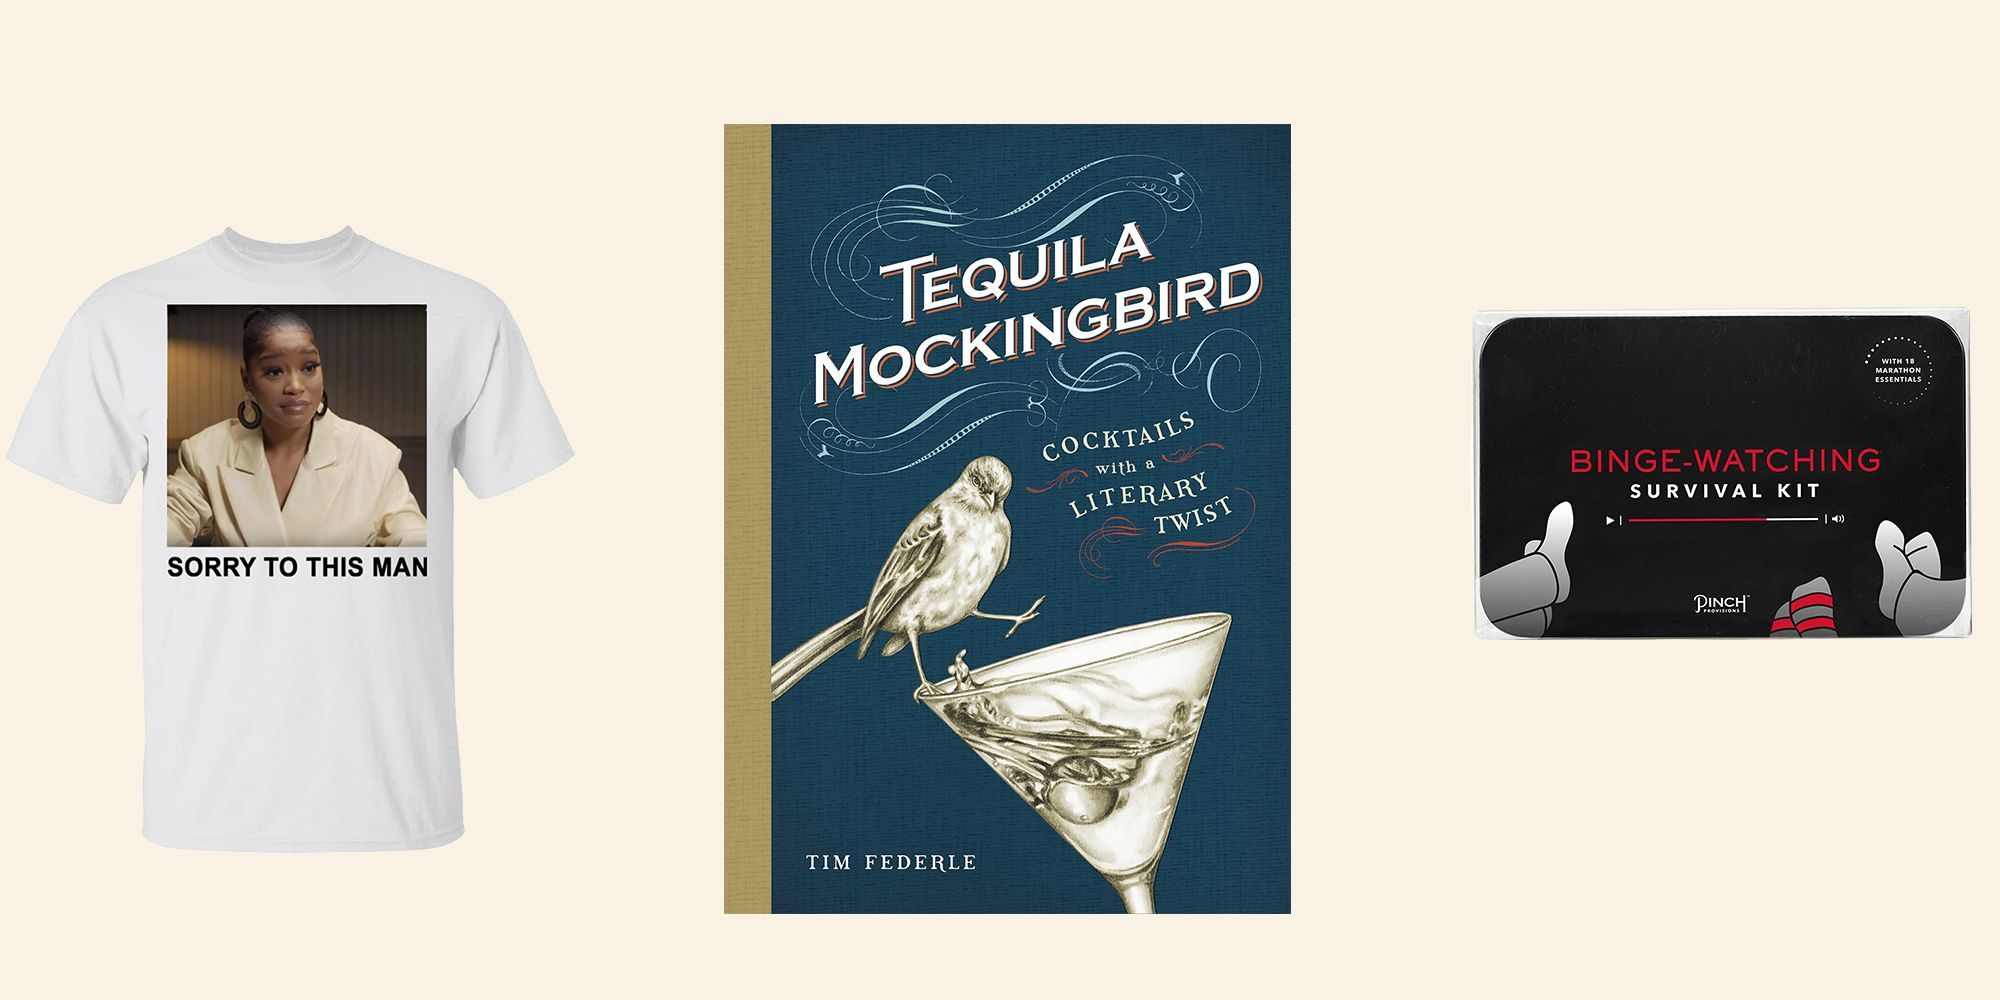 Keke Palmer Tshirt, Tequila Mockingbird, Binge Watching Kit